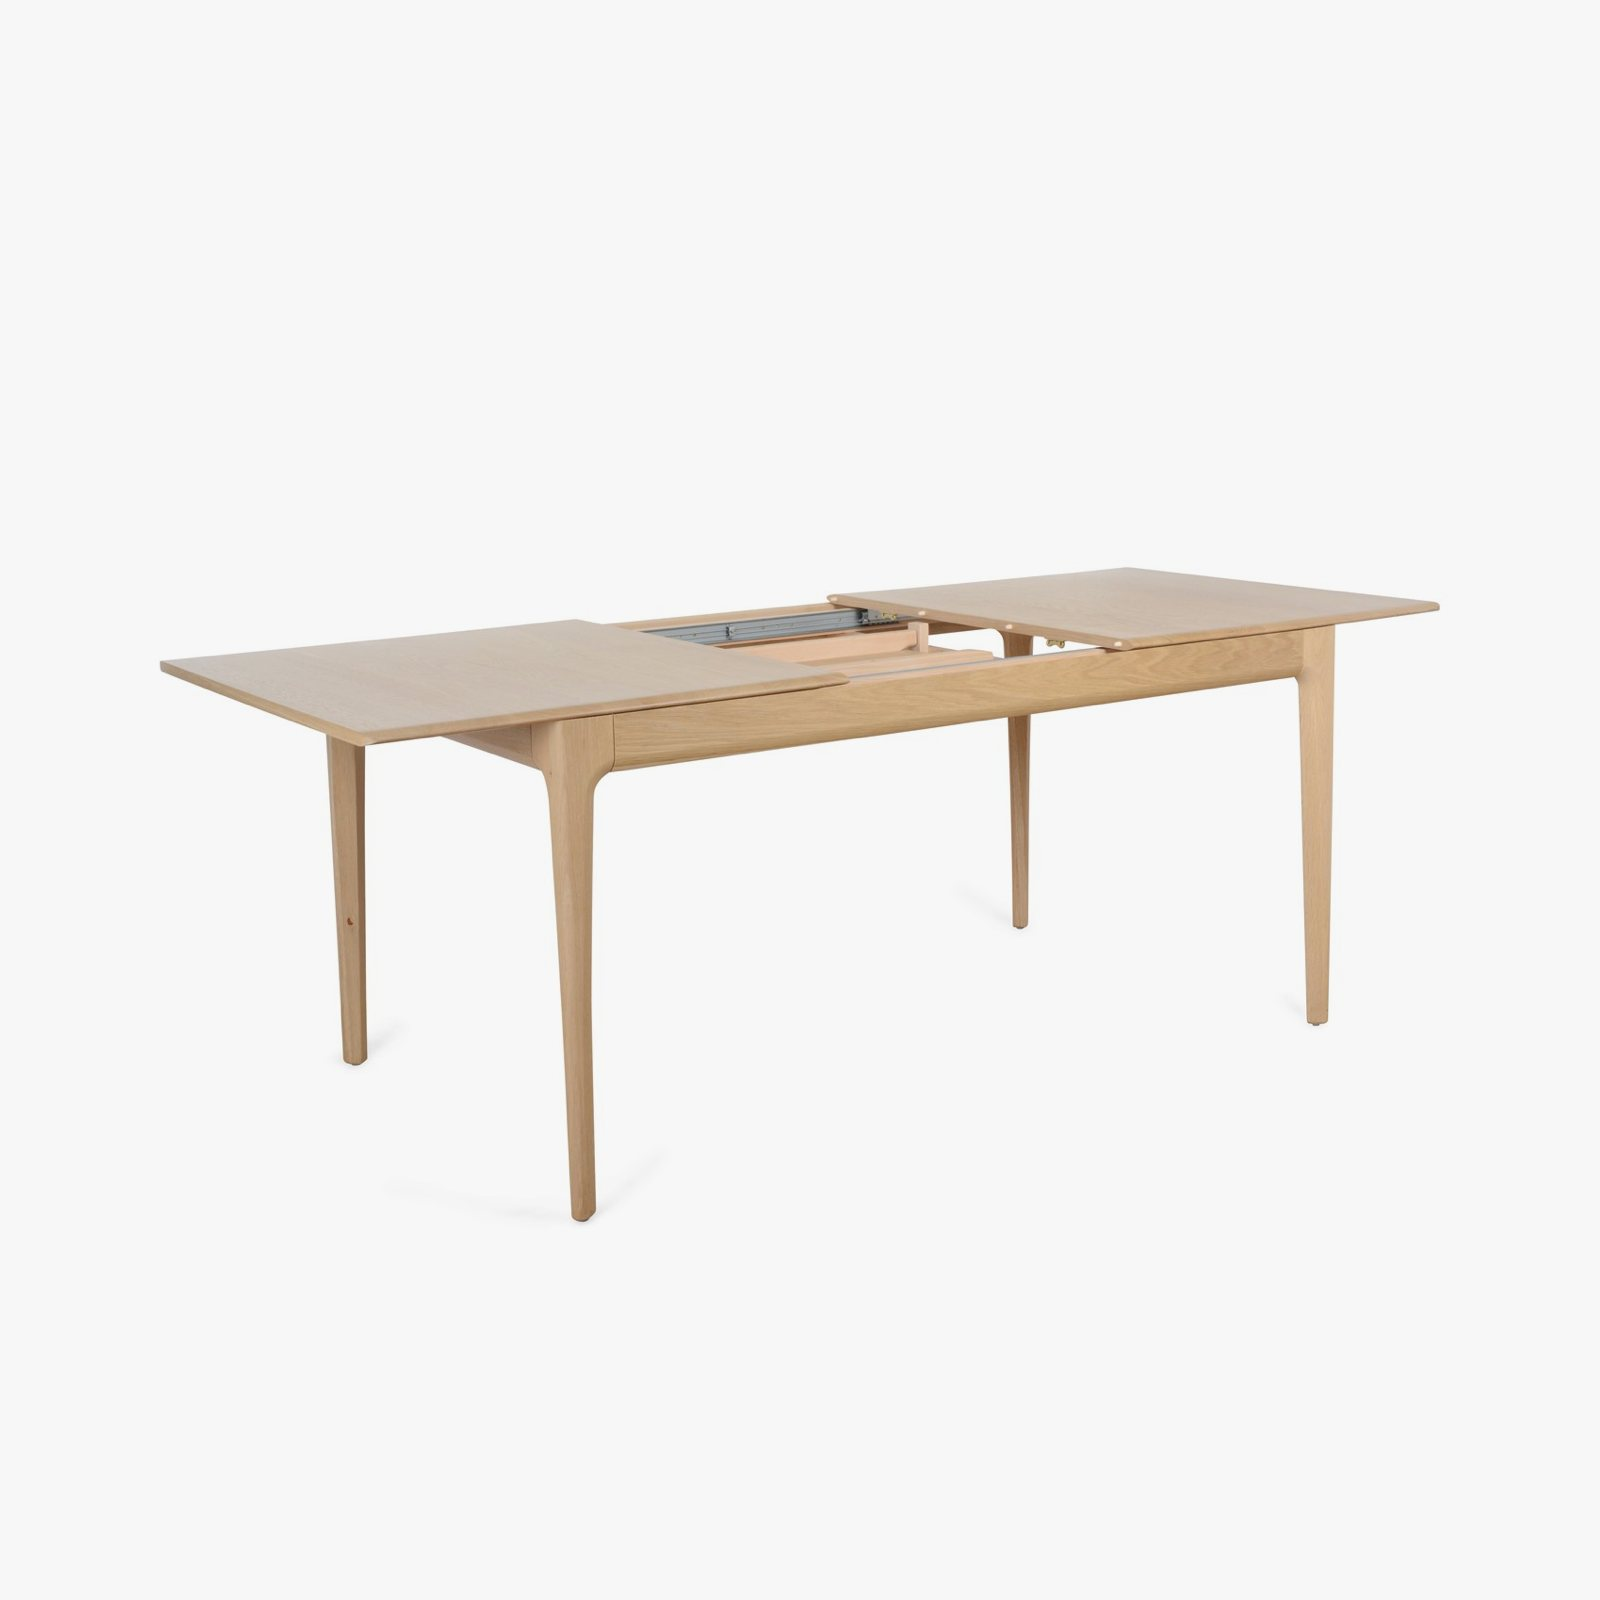 Extended Tables romana extending tableercol | up interiors